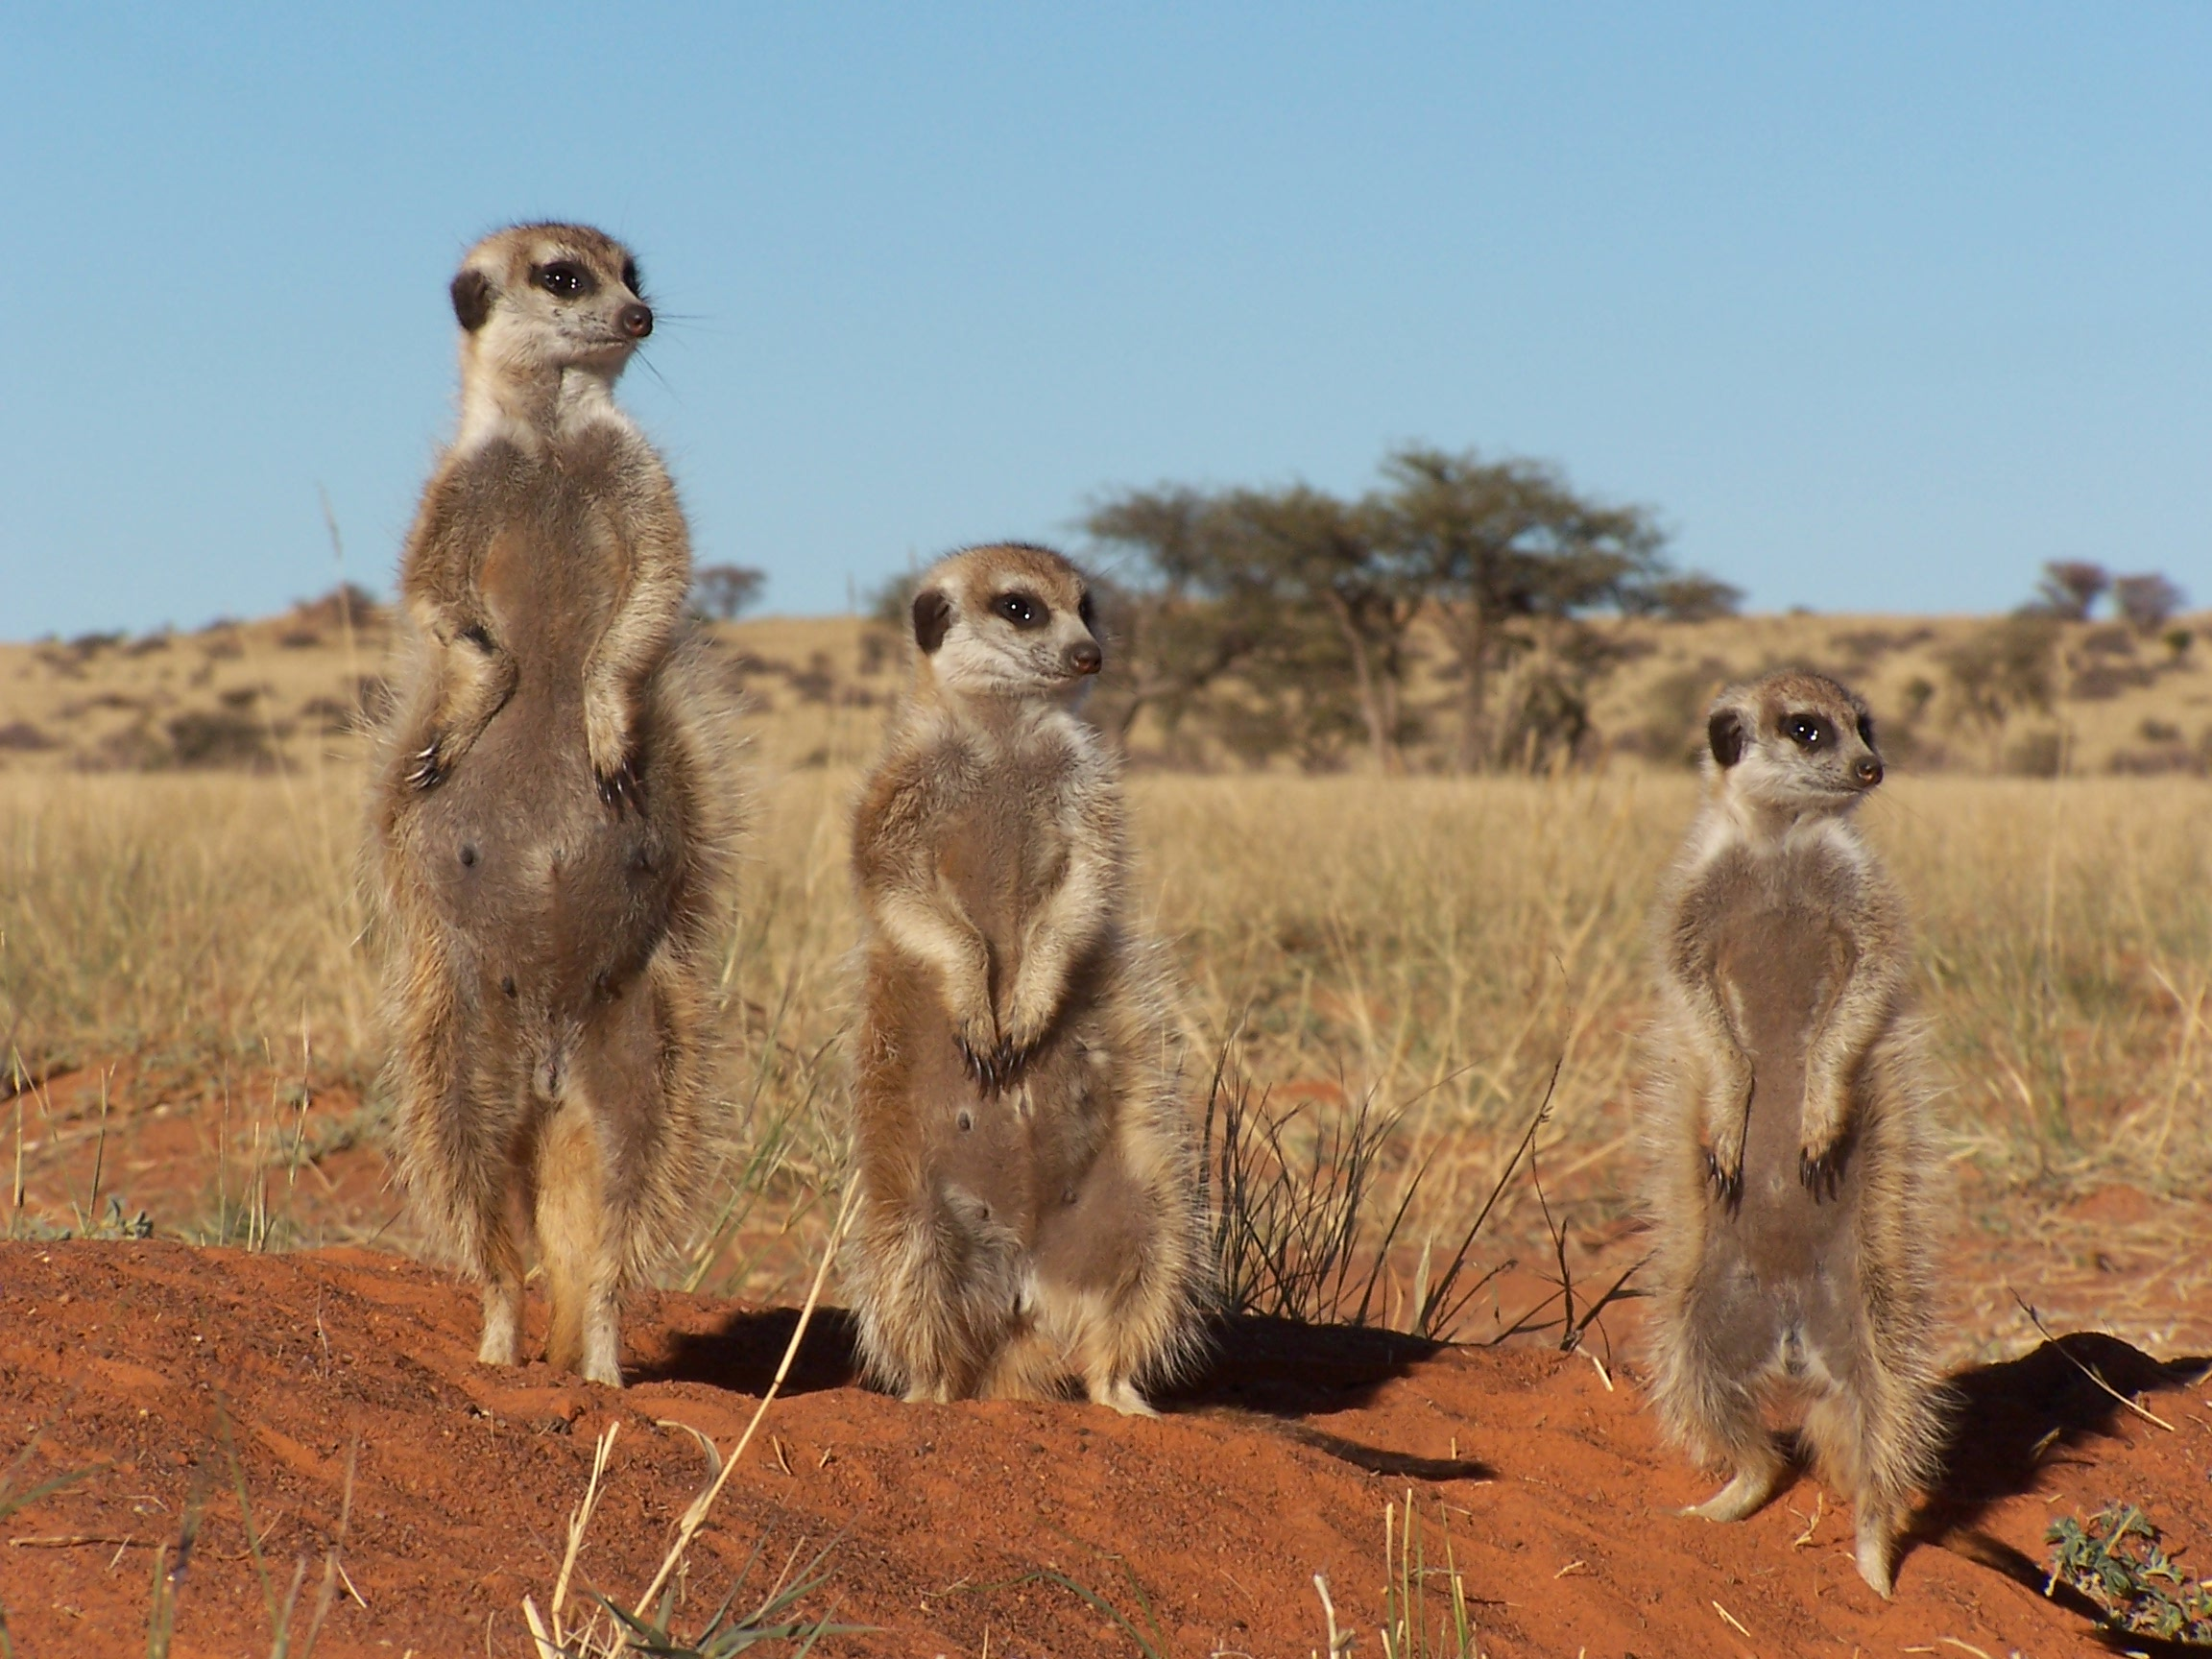 Meerkats in the Tswalu Kalahari Reserve, courtesy Tswalu Kalahari